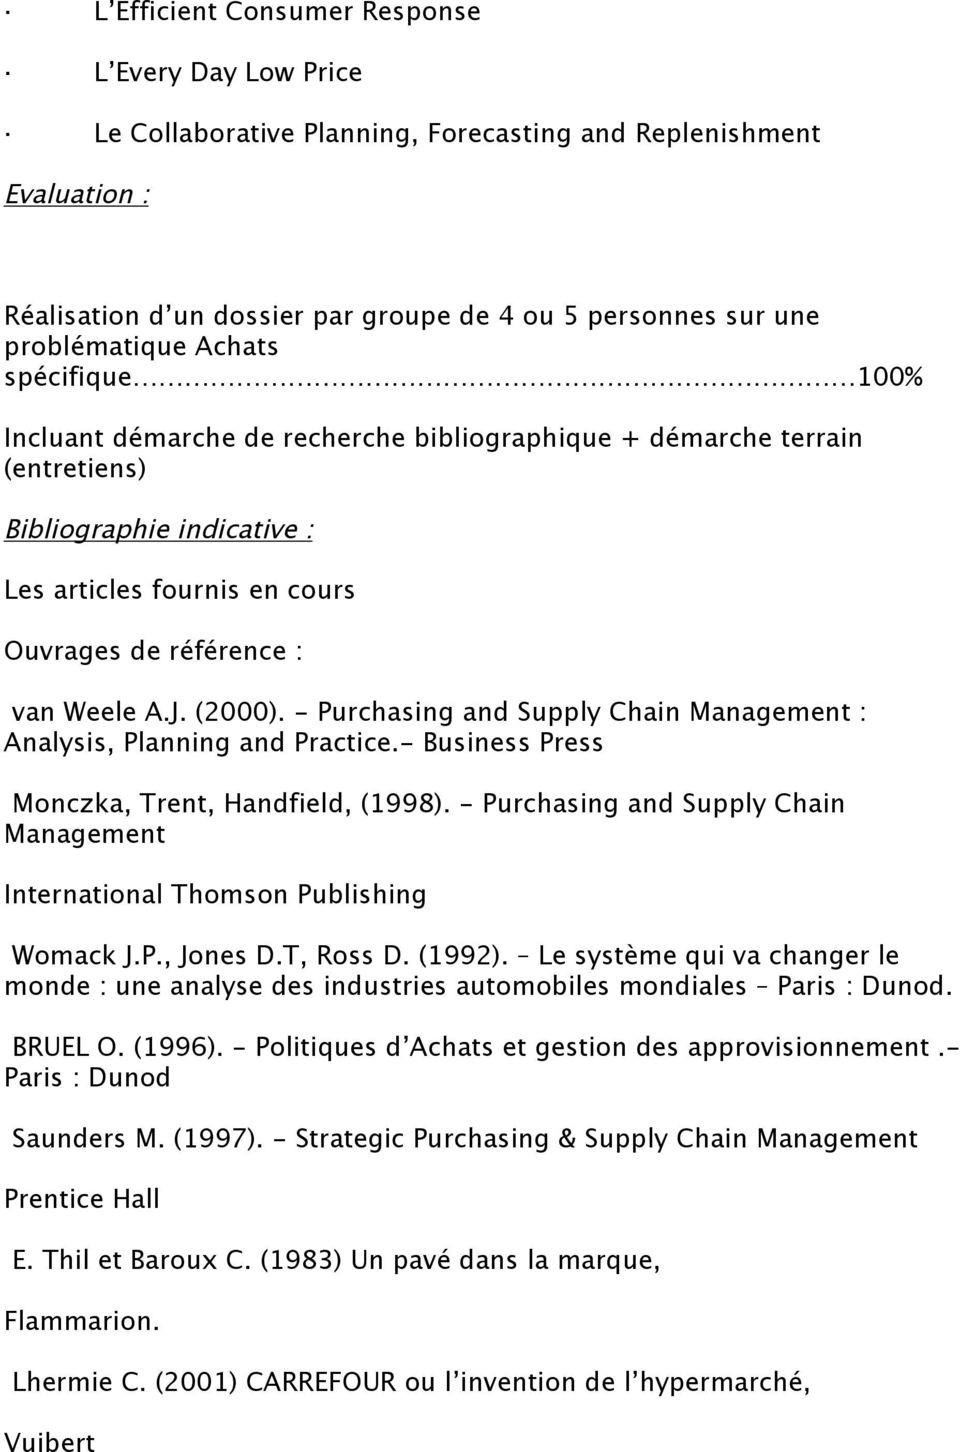 (2000). - Purchasing and Supply Chain : Analysis, Planning and Practice.- Business Press Monczka, Trent, Handfield, (1998). - Purchasing and Supply Chain International Thomson Publishing Womack J.P., Jones D.